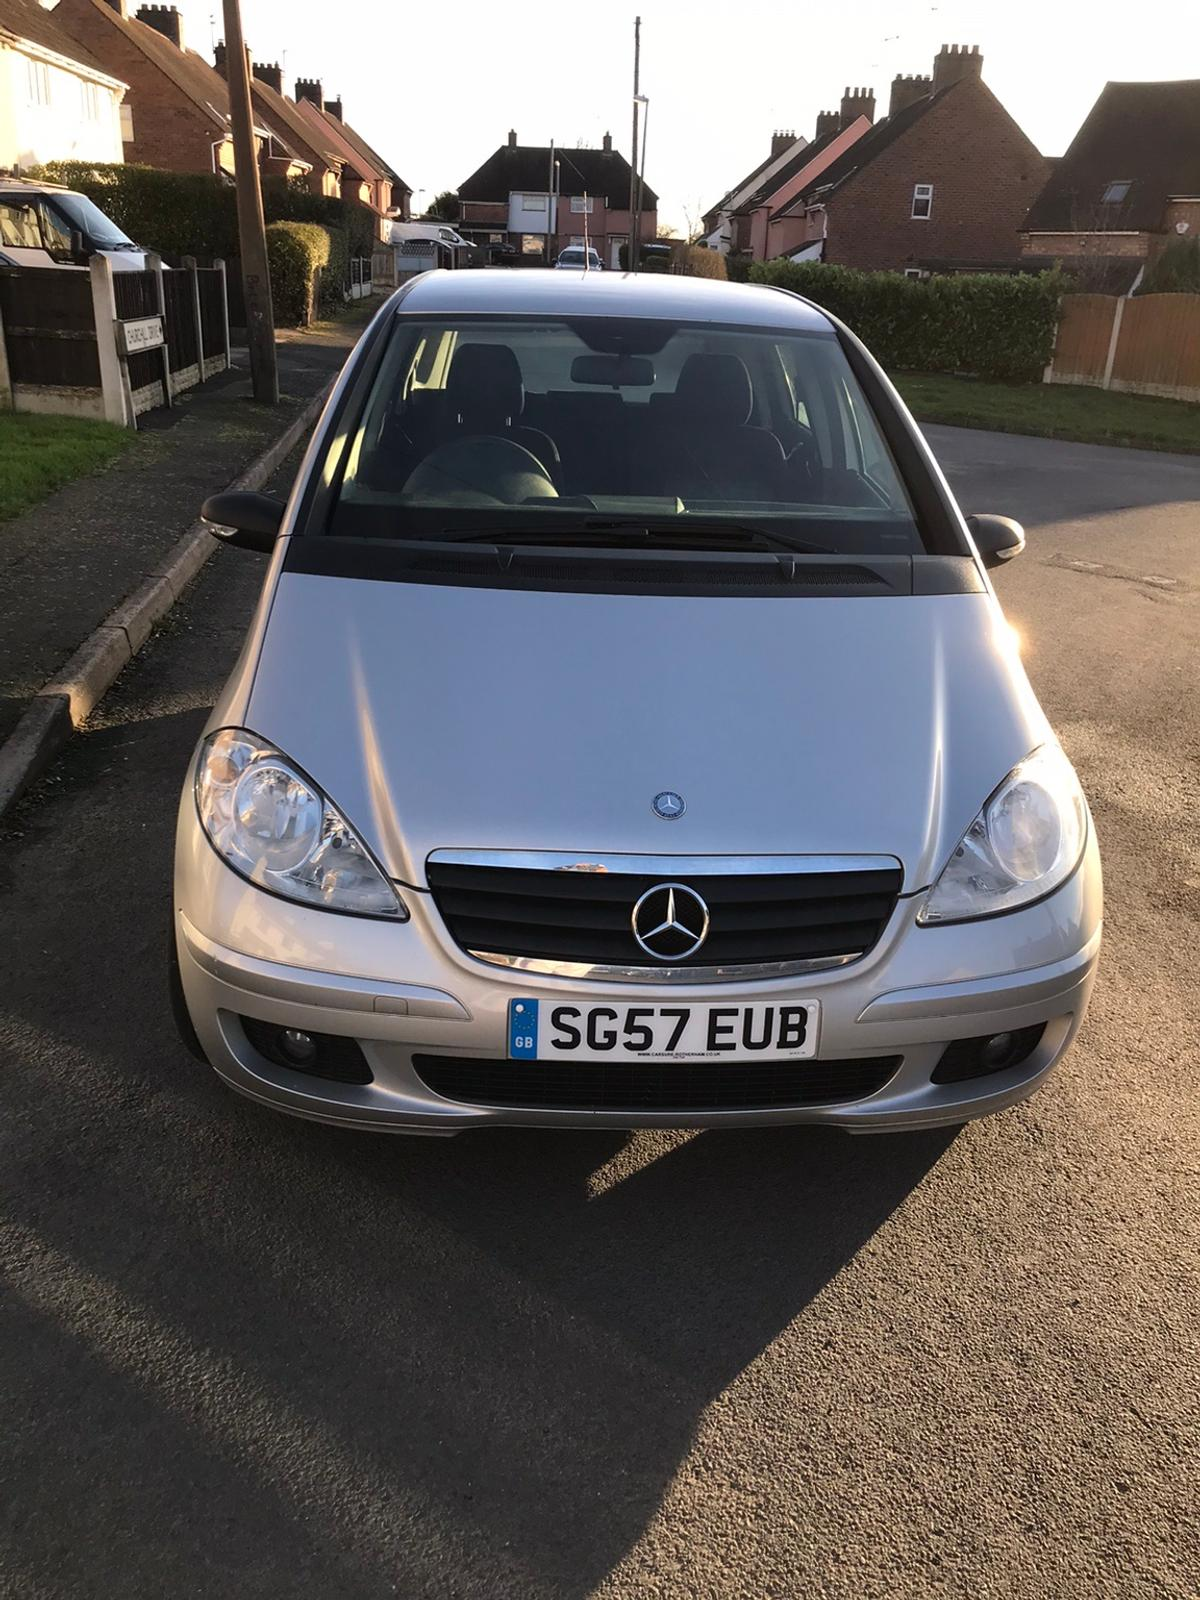 Here I have a Mercedes A150. Immaculate car - FSH till October 2019 - Warranted Miles - Alll paper work for all work done to date. Lots and lots of documentation. Only 69K on the clock. First to see will buy. Mot till 16 Sept 2020. Immaculate body work.2 Keys - No lights on dashboard - genuine car to enjoy HPI clear. Electric Mirrors. No dents